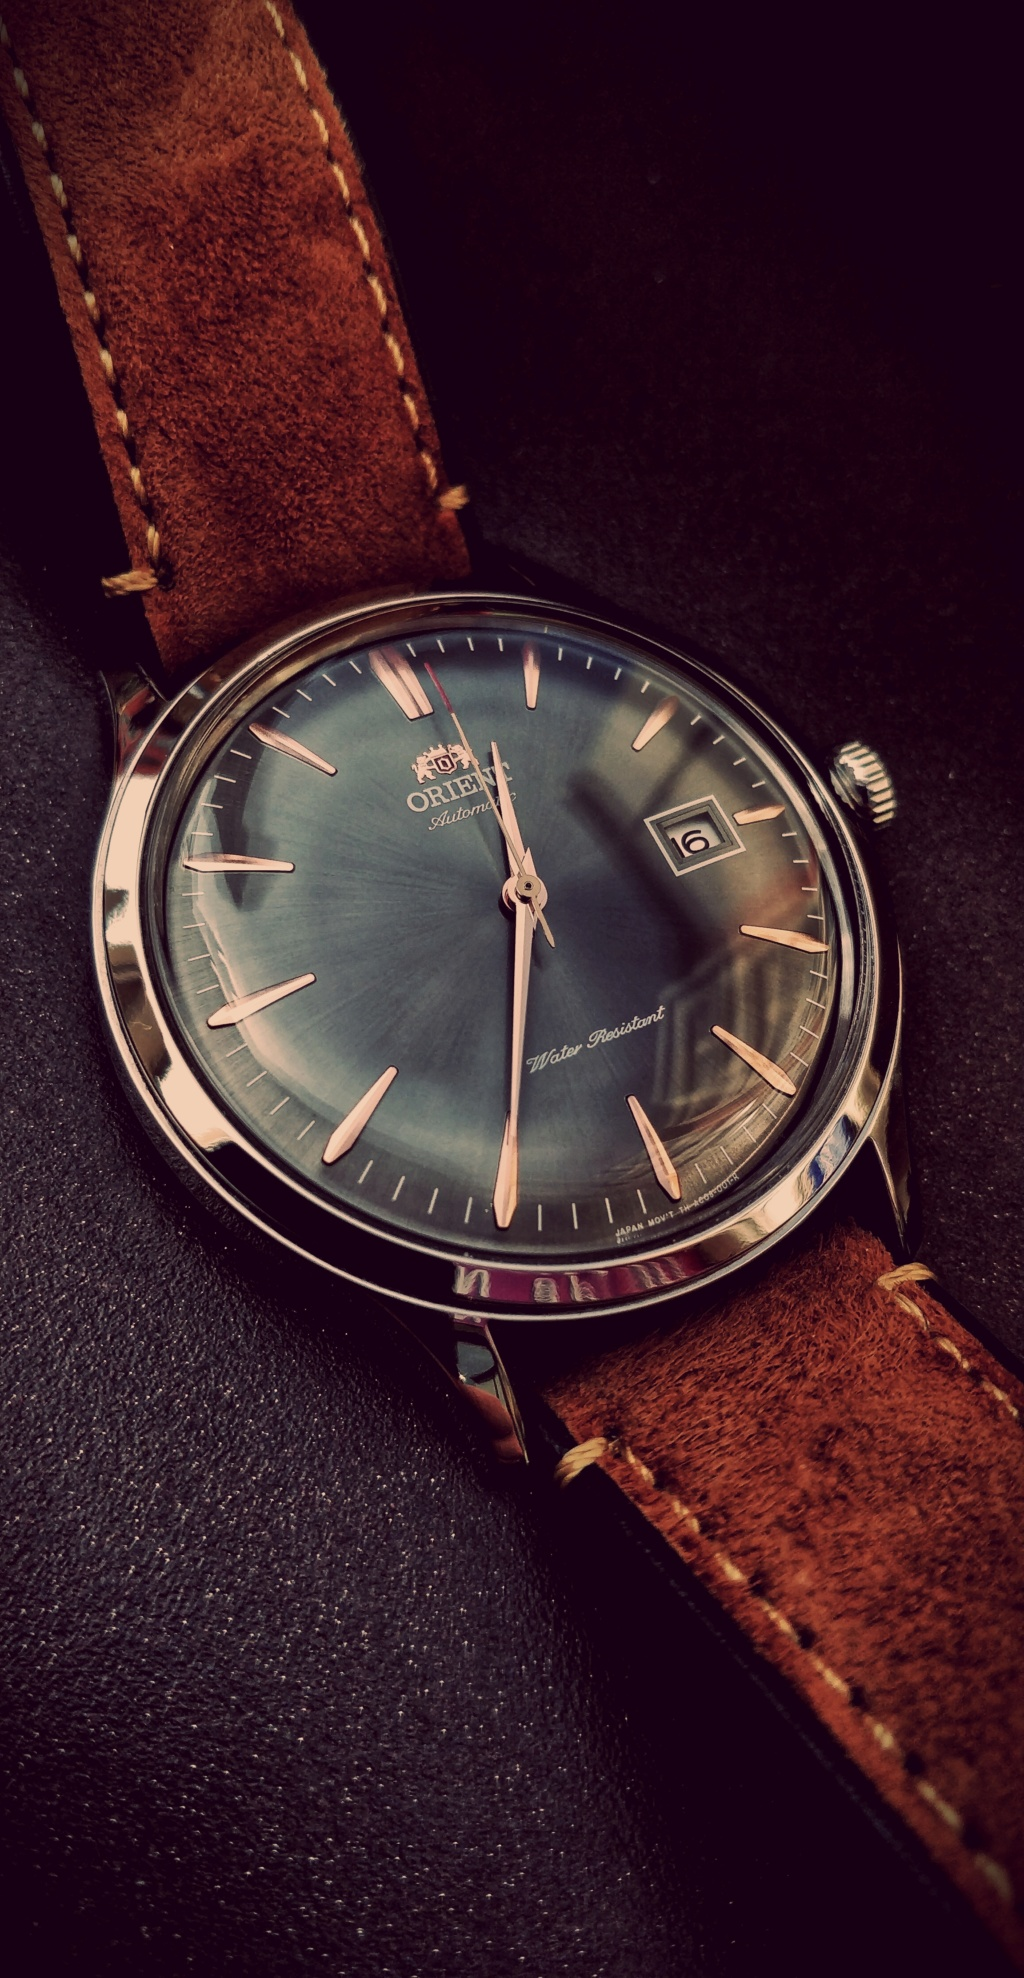 orient bambino V4 - Page 23 Img_2015